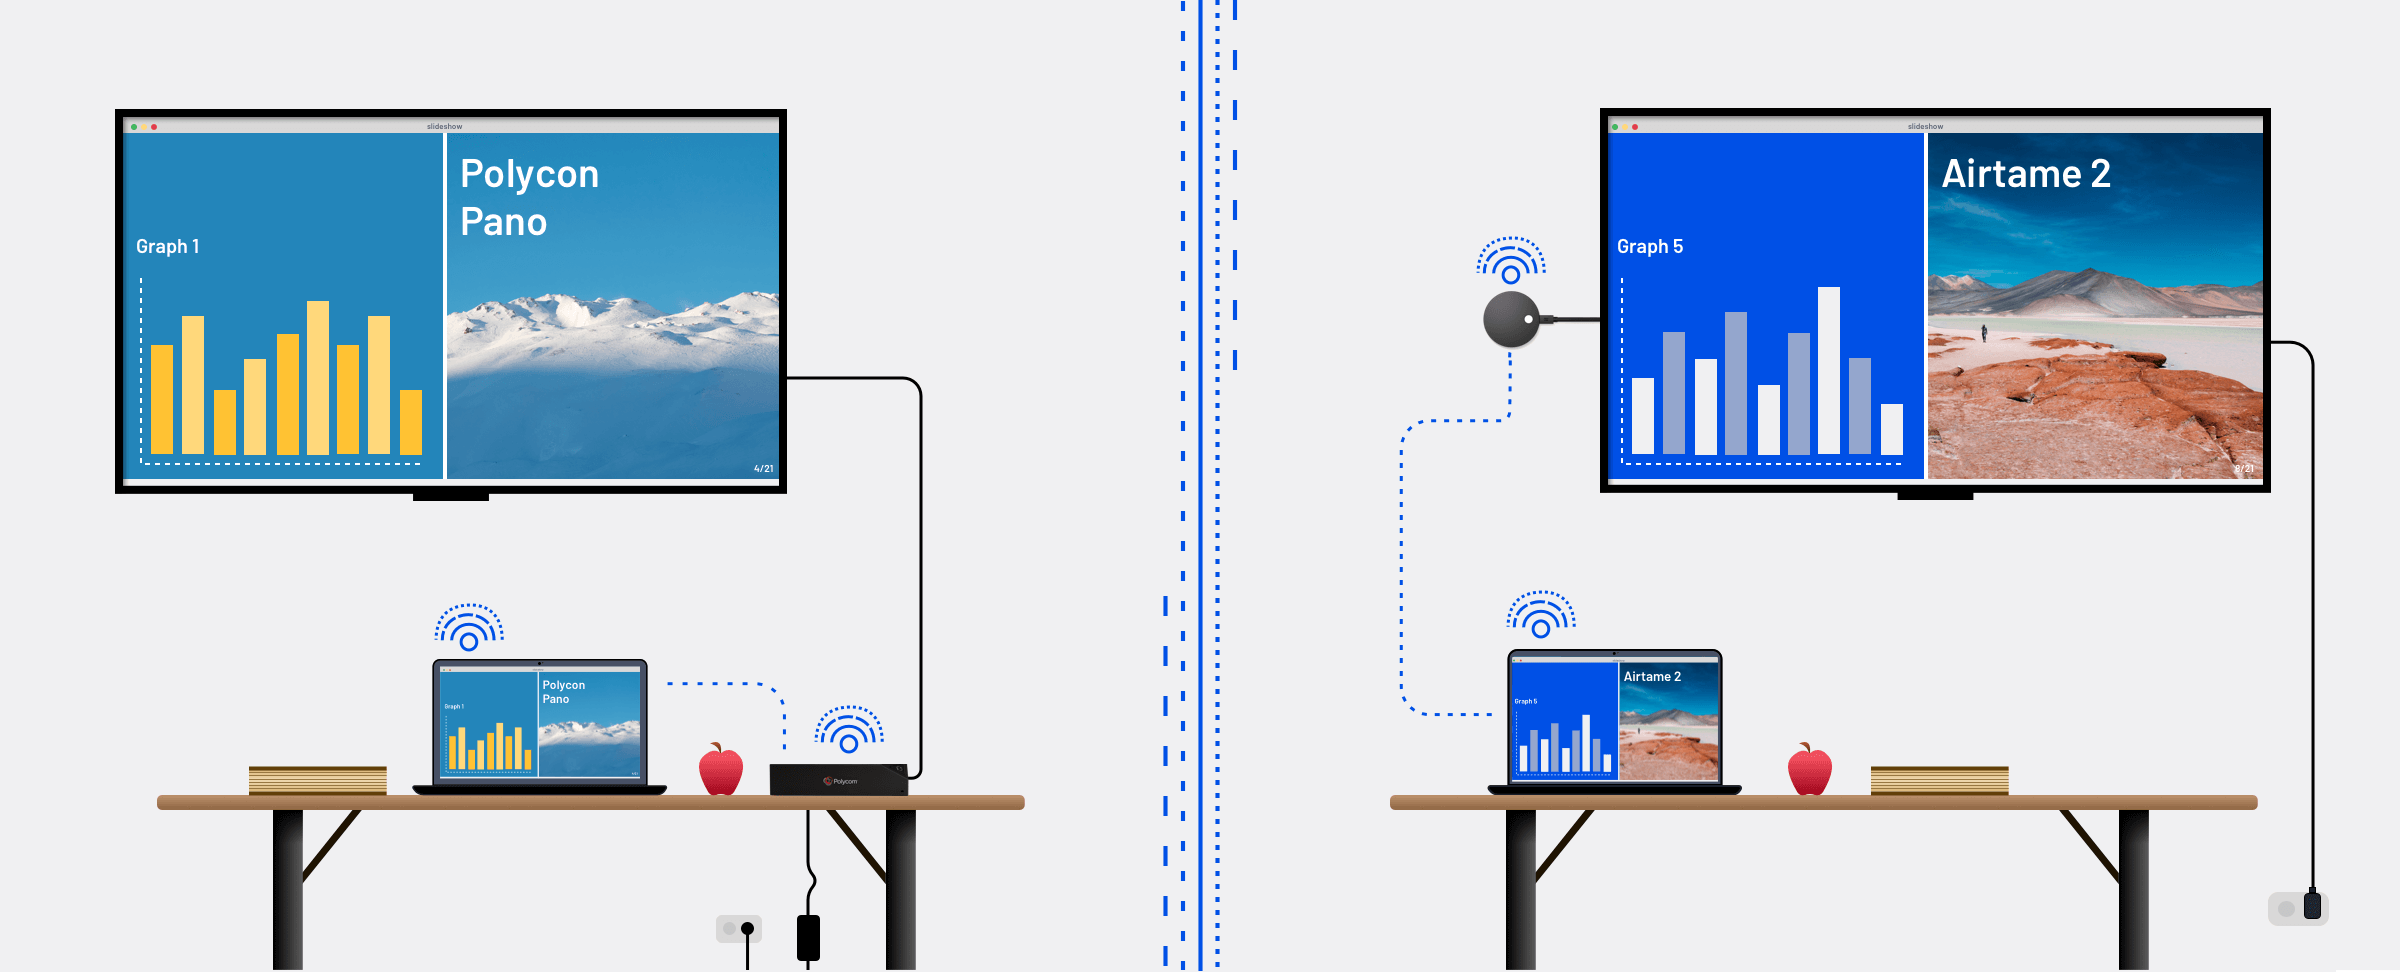 https://airtame com/compare/polycom-pano-alternative/ 2019